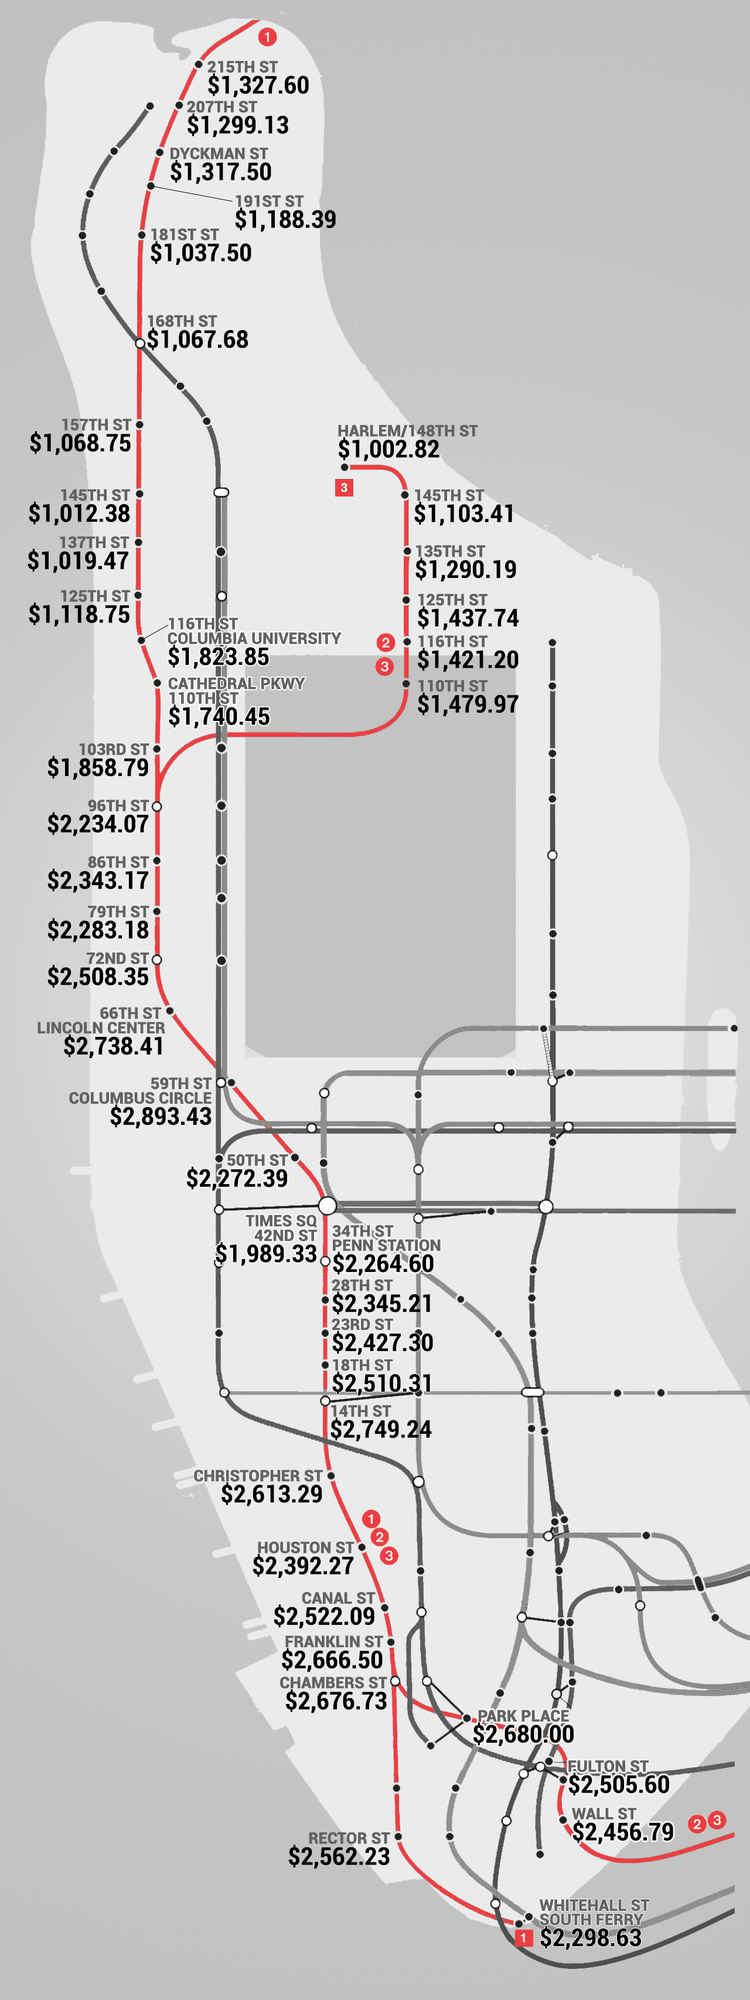 Subway-Rent-Map-1,2,3